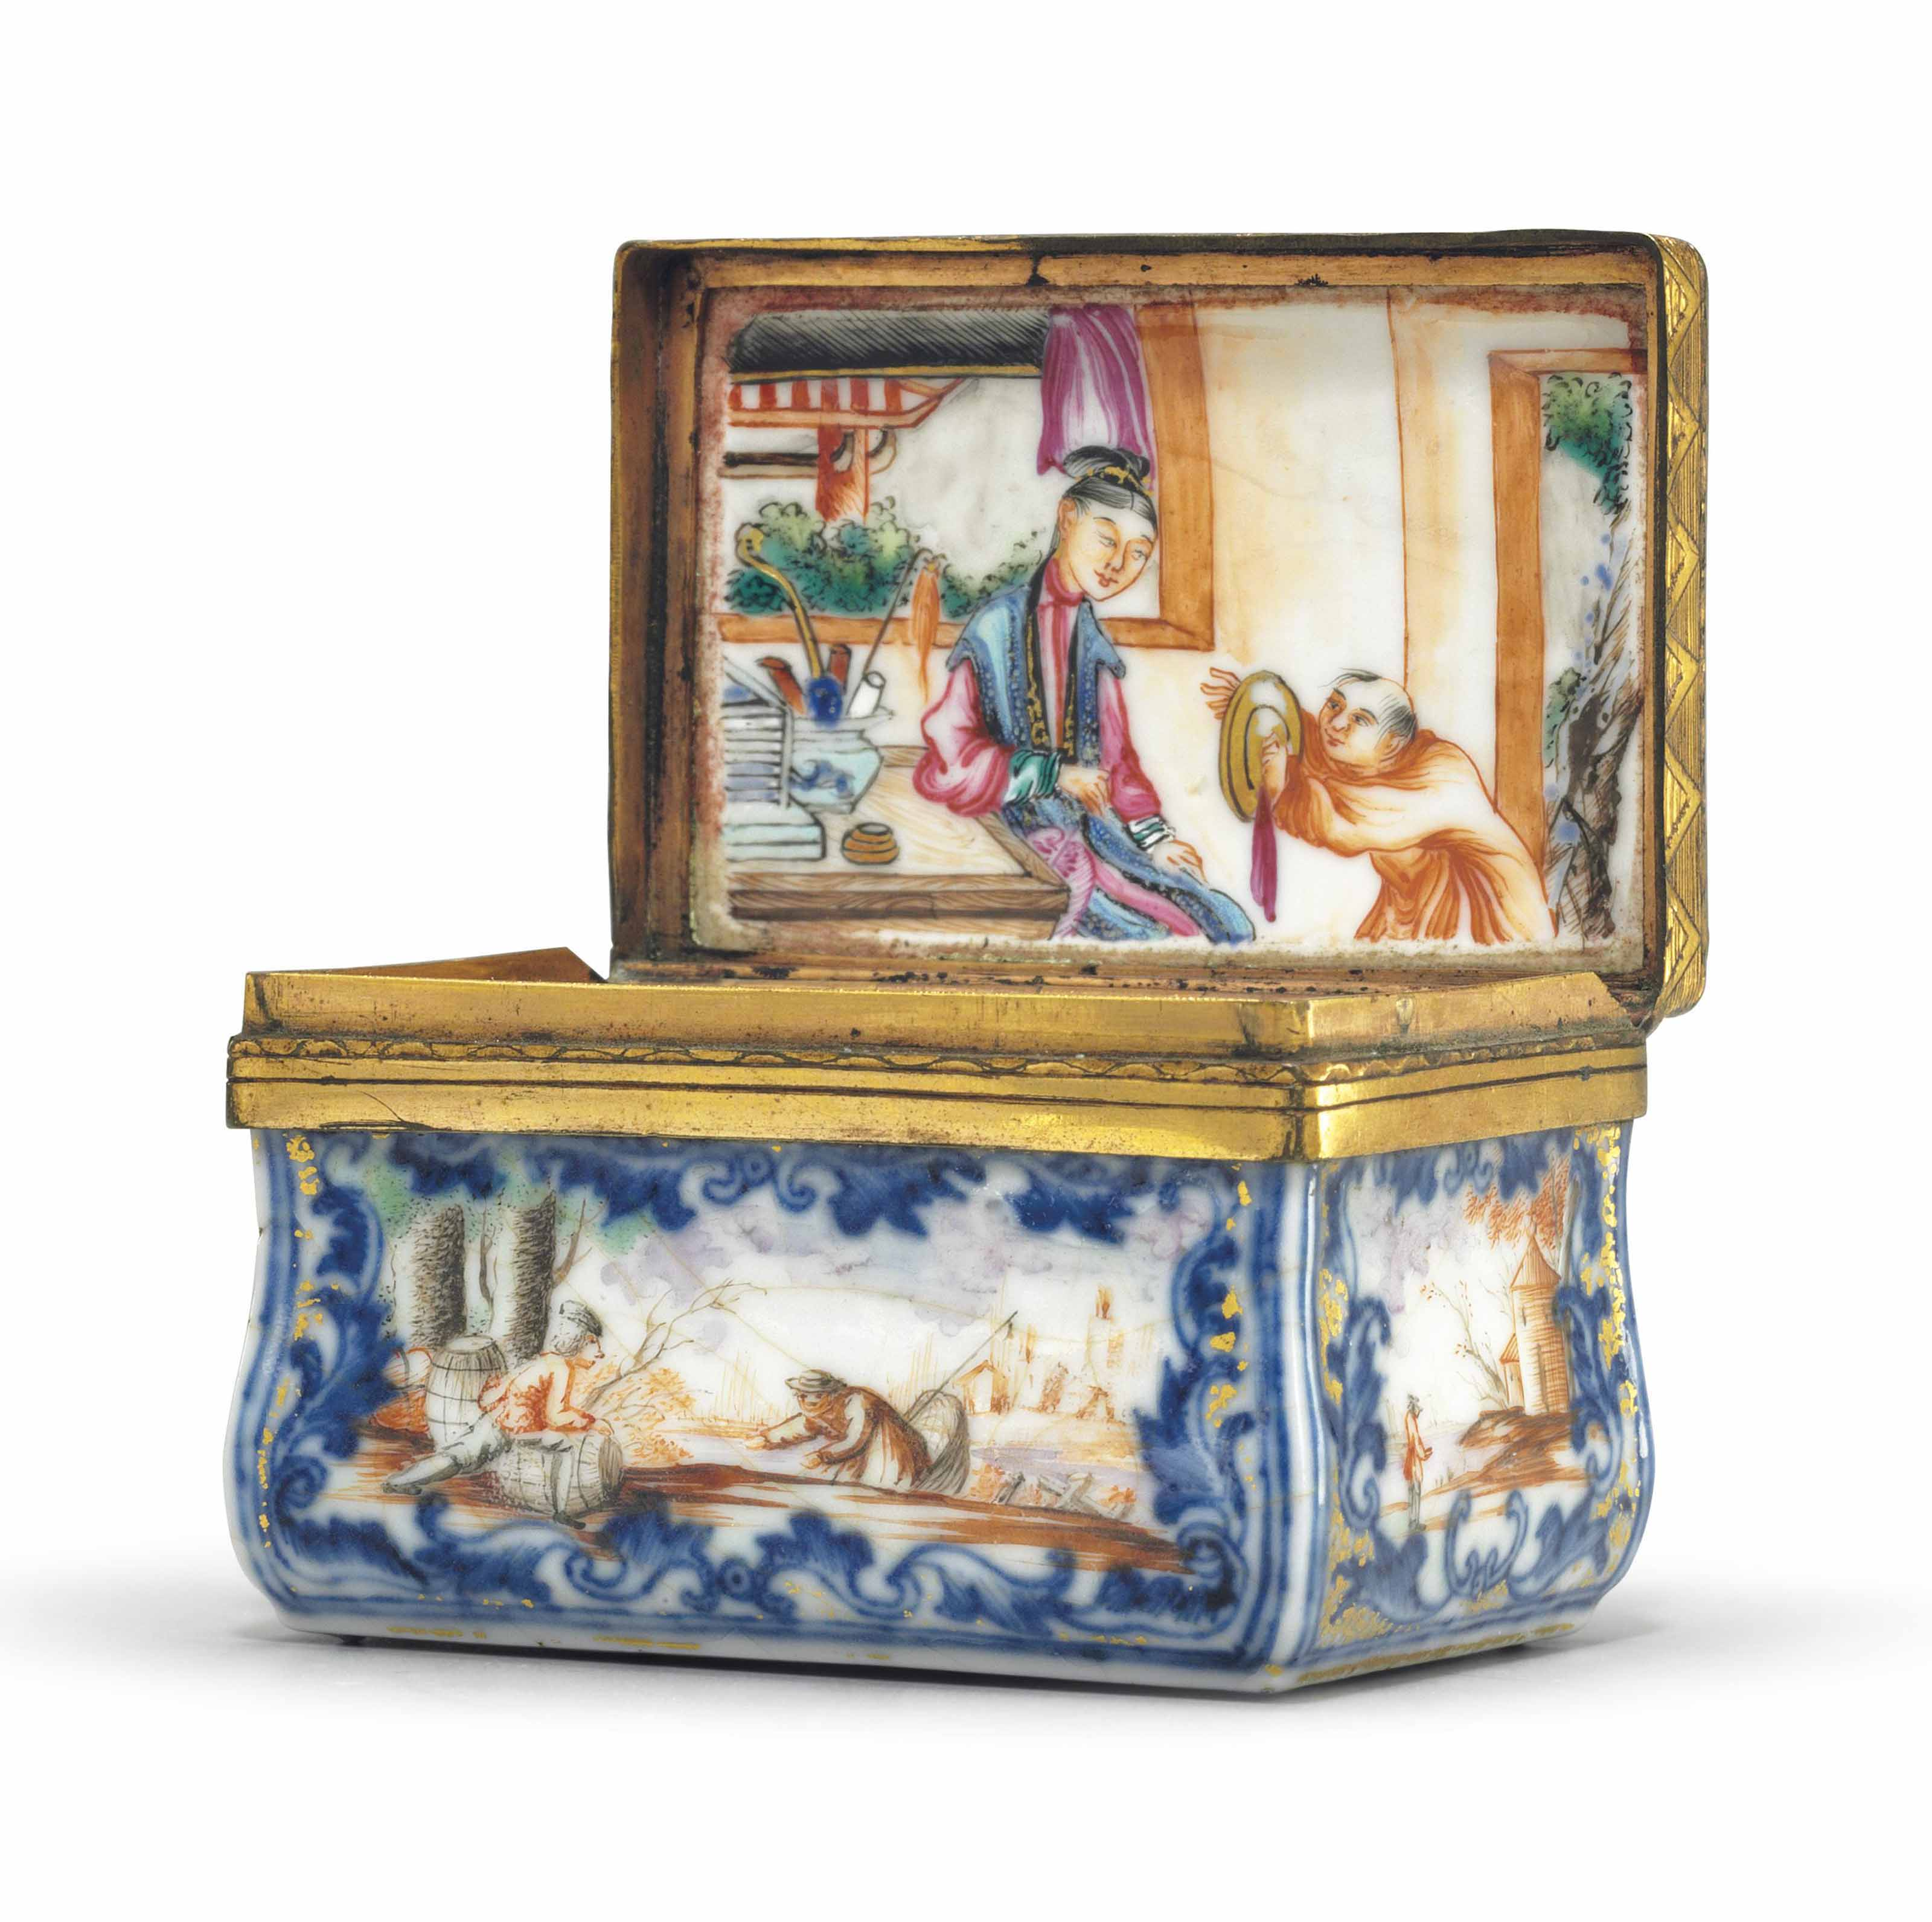 A FAMILLE ROSE AND COBALT BLUE PORCELAIN SNUFF BOX